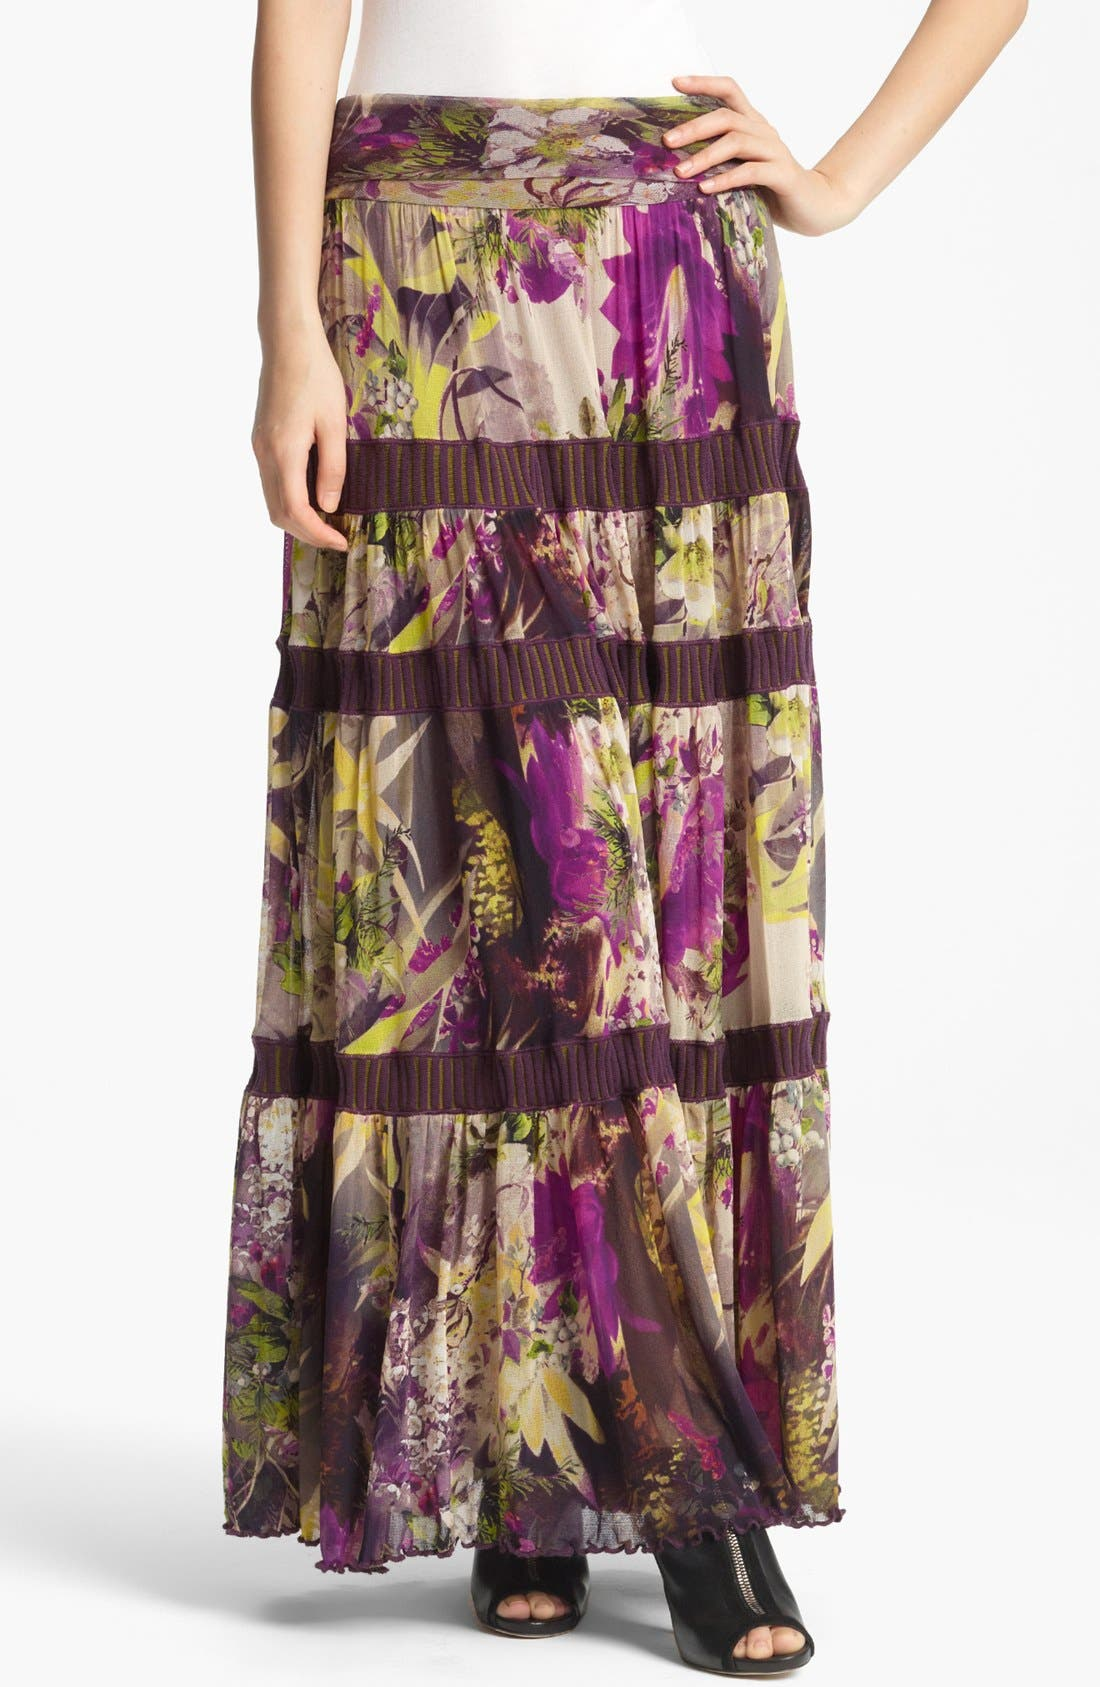 Alternate Image 1 Selected - Jean Paul Gaultier Fuzzi Floral Print Tiered Tulle Skirt